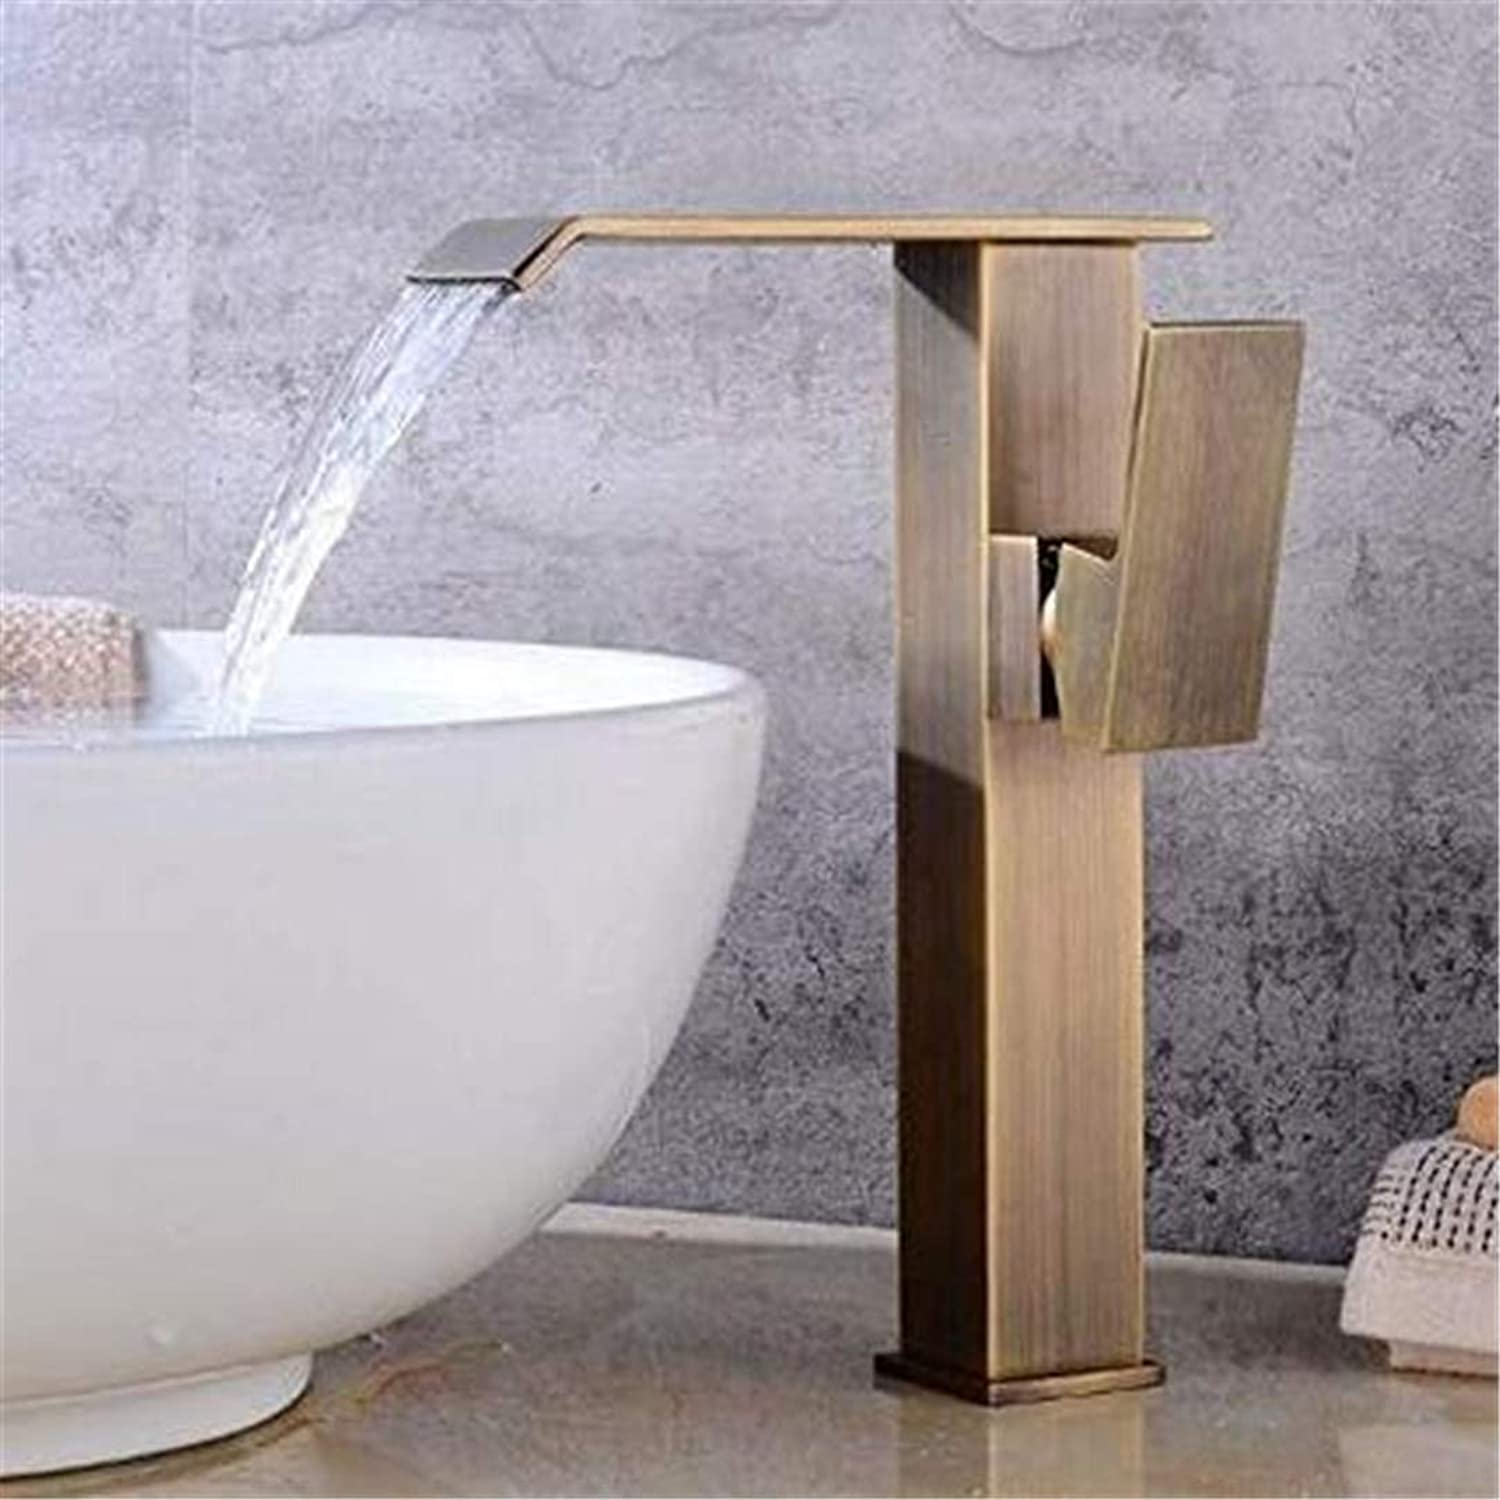 Double Handlefaucets Basin Mixer Faucet Bathroom Basin Hot and Cold Faucet Waterfall Single-Hole Washbasin Faucet